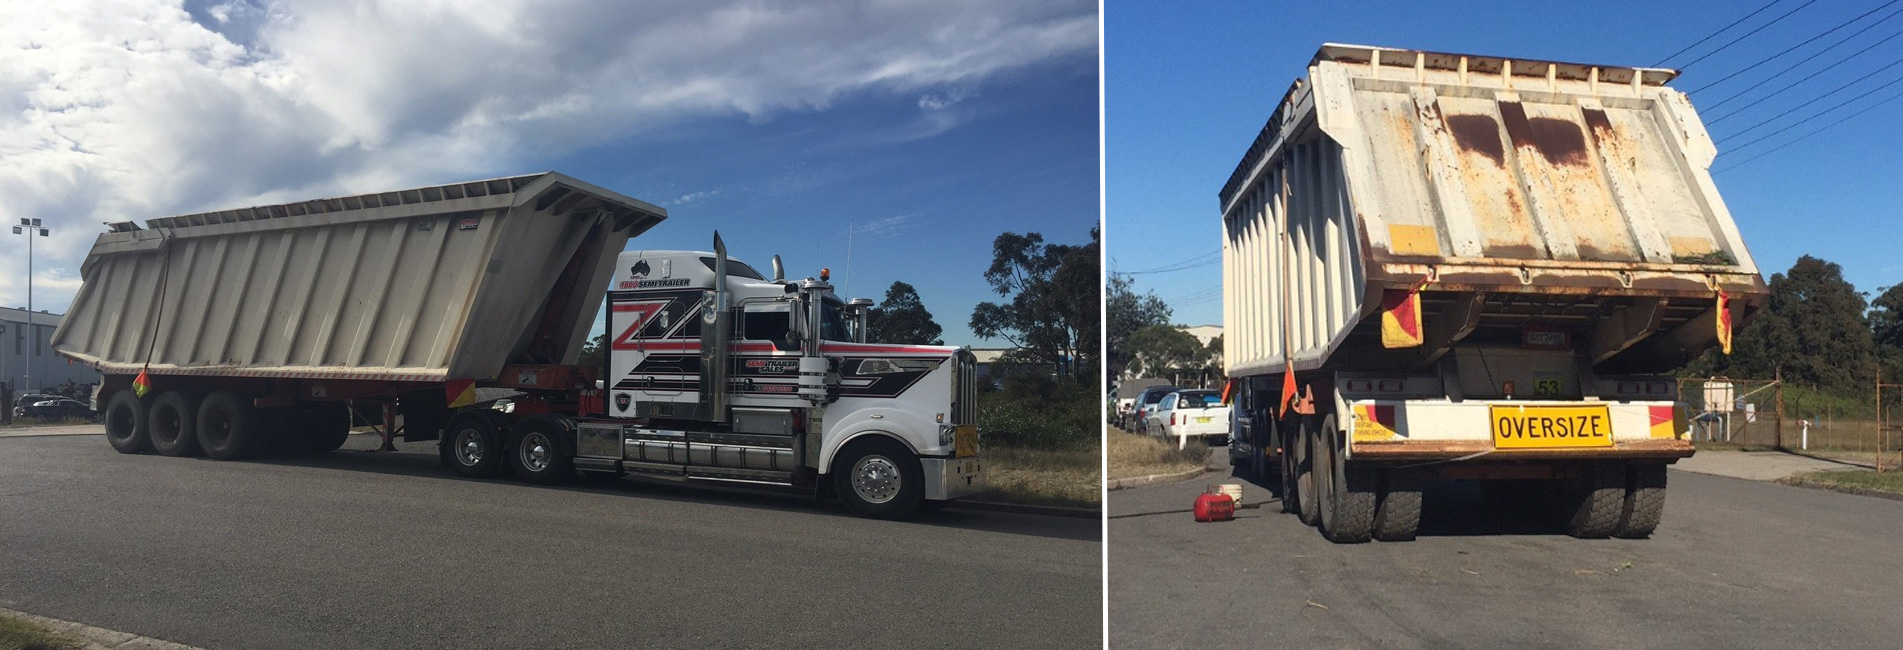 New Semi Trailers Melbourne, New Semi Trailer Sale Lockwood, Semi Trailer Rental Golden Square, Semi Trailer Sales Sydney, Used Semi Trailers Kangaroo Flat